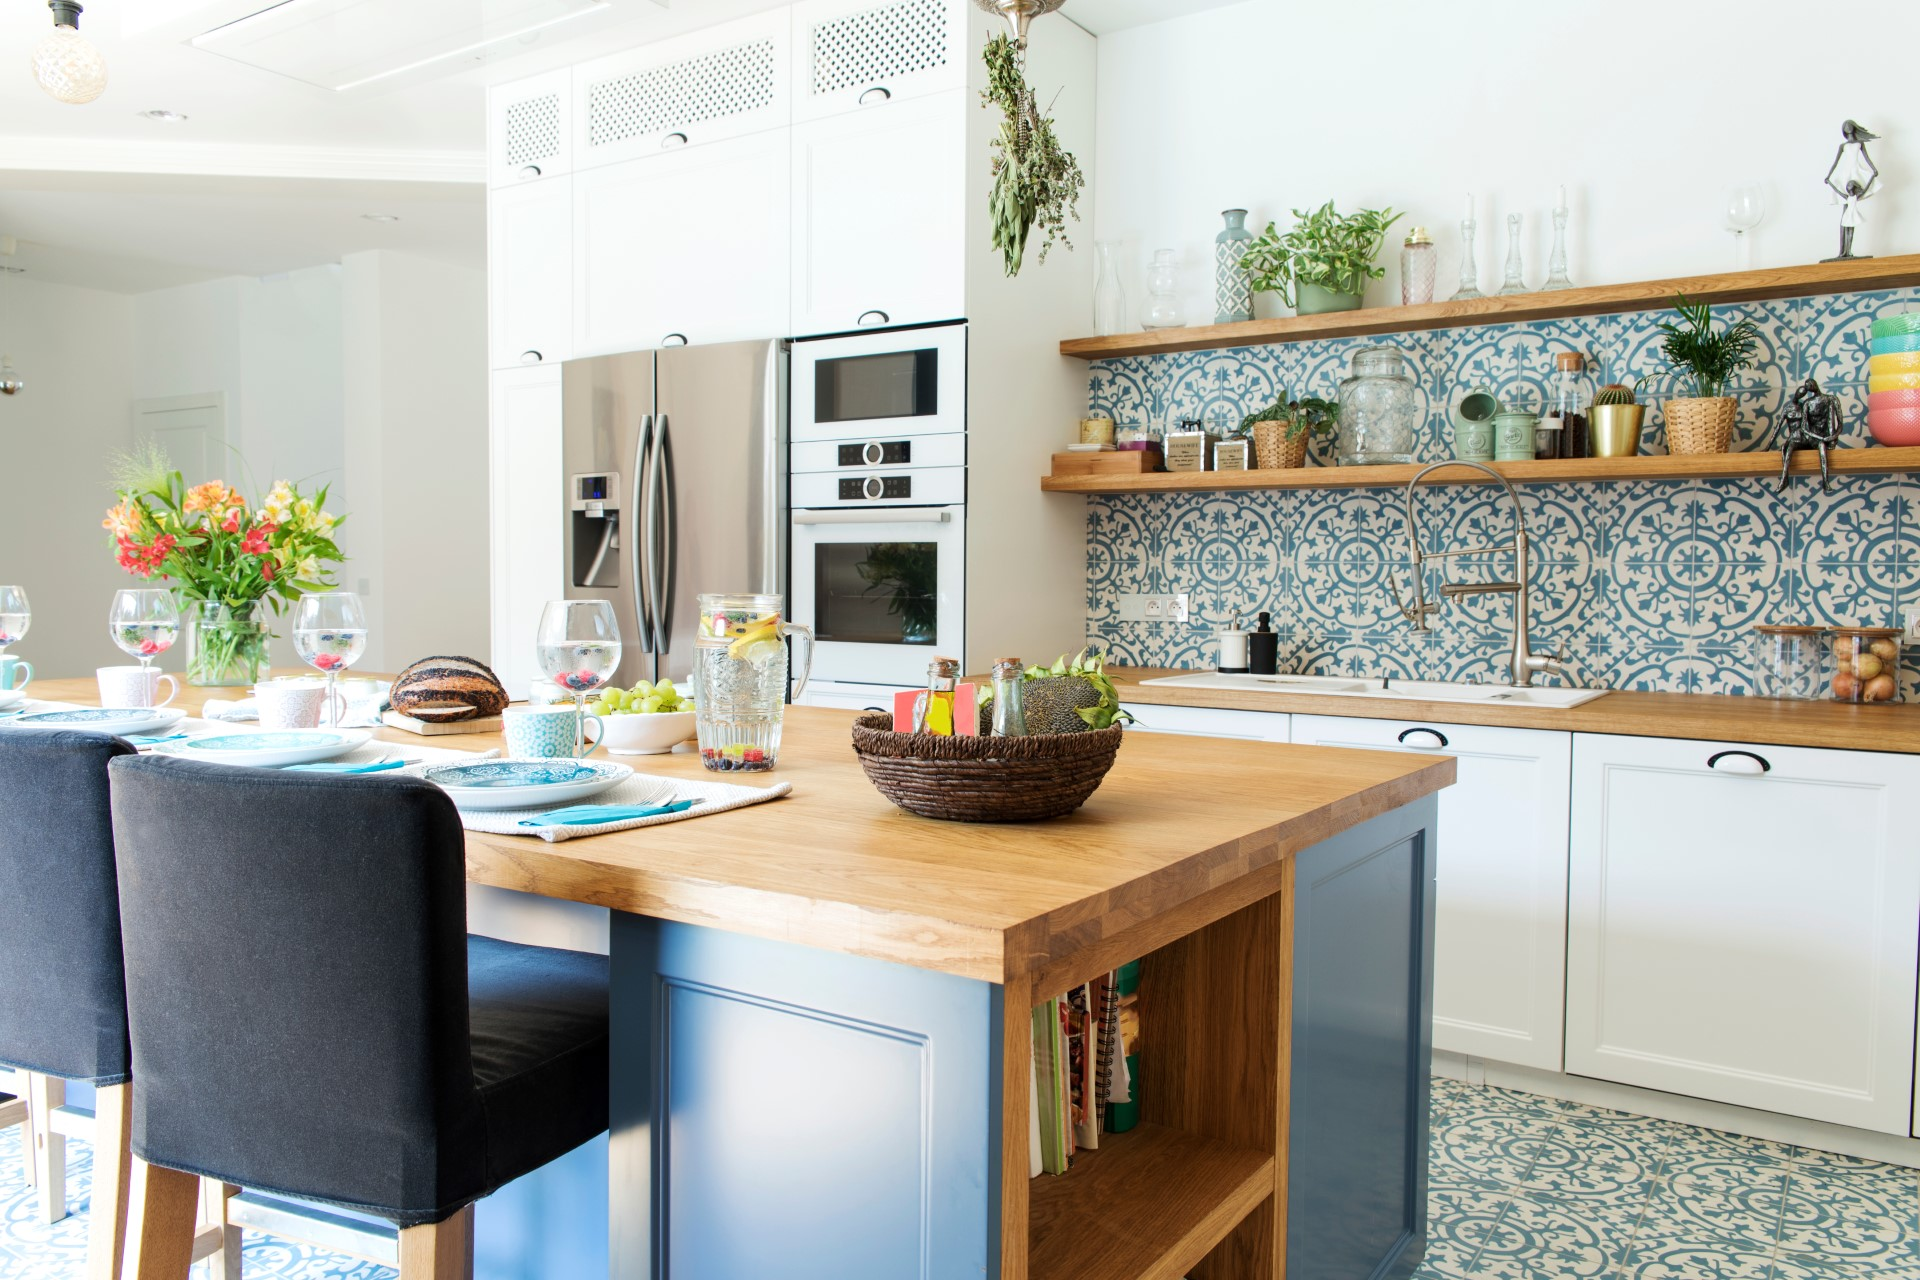 A fun quirky design like this deserves a hoorah. The intricate designs of tiles helps build character and depth while the blue brings about peace and harmony with a touch of wood for that piece full nature ambiance.